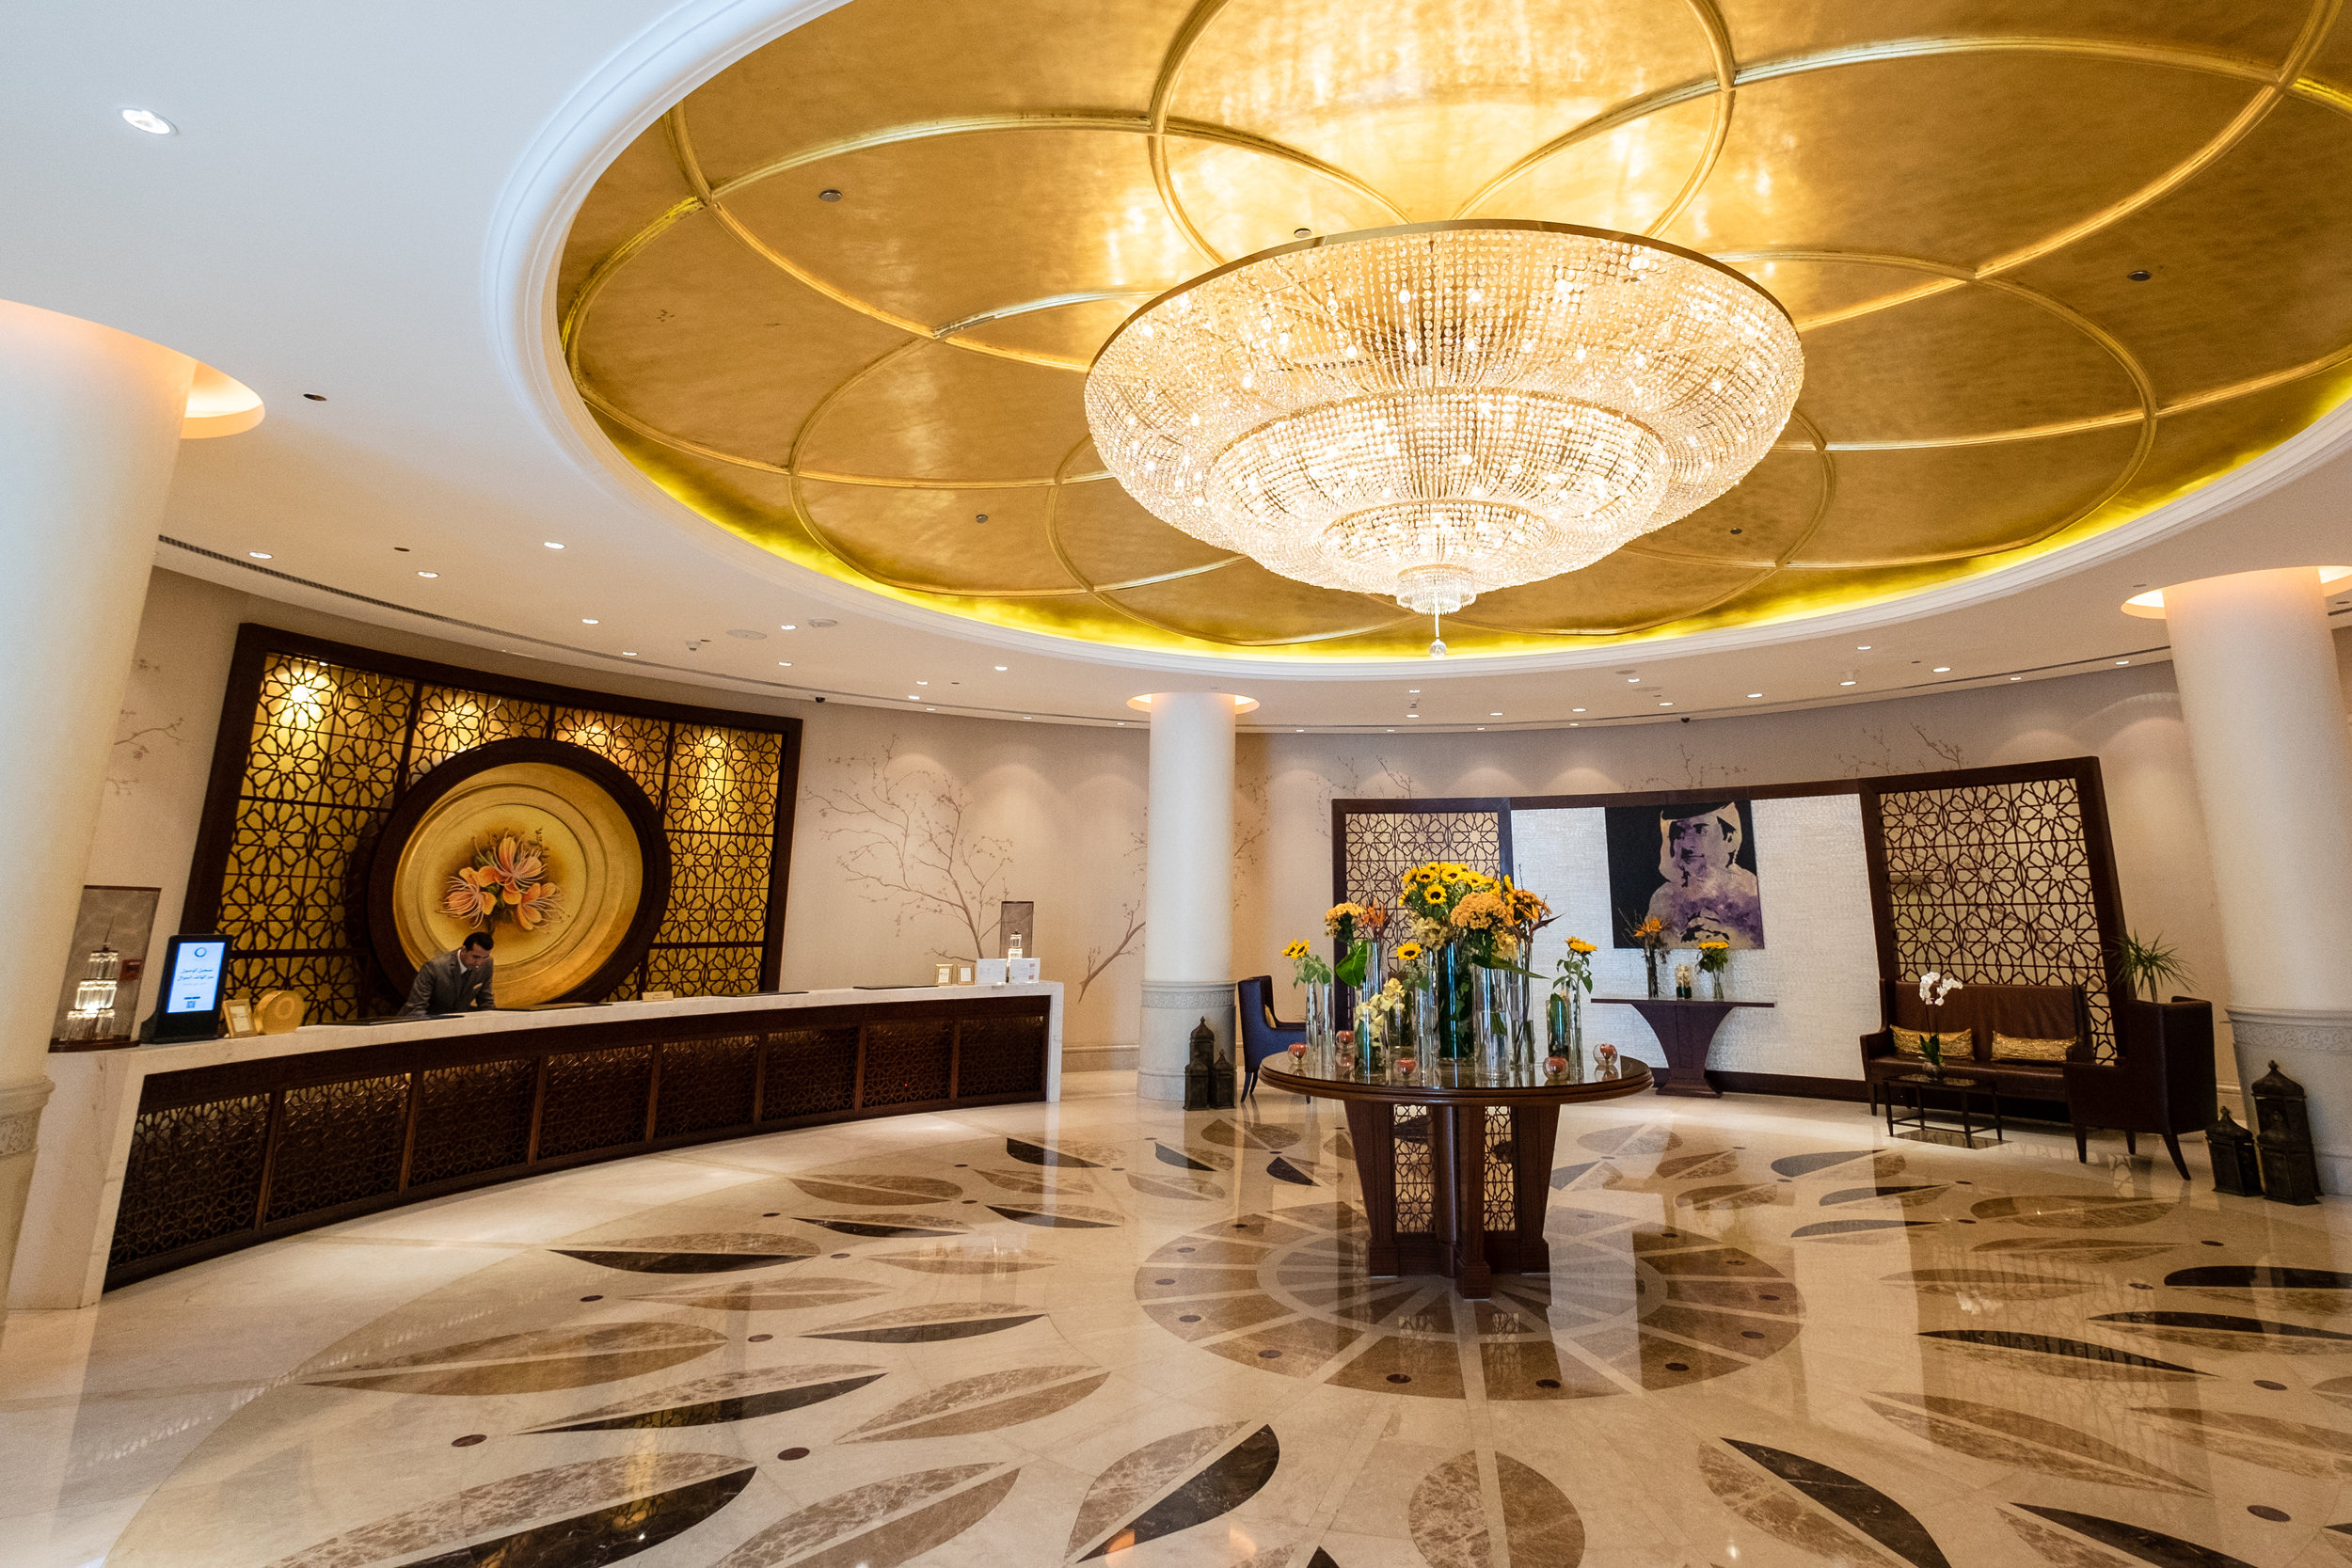 Stunning lobby of the Shangri-La